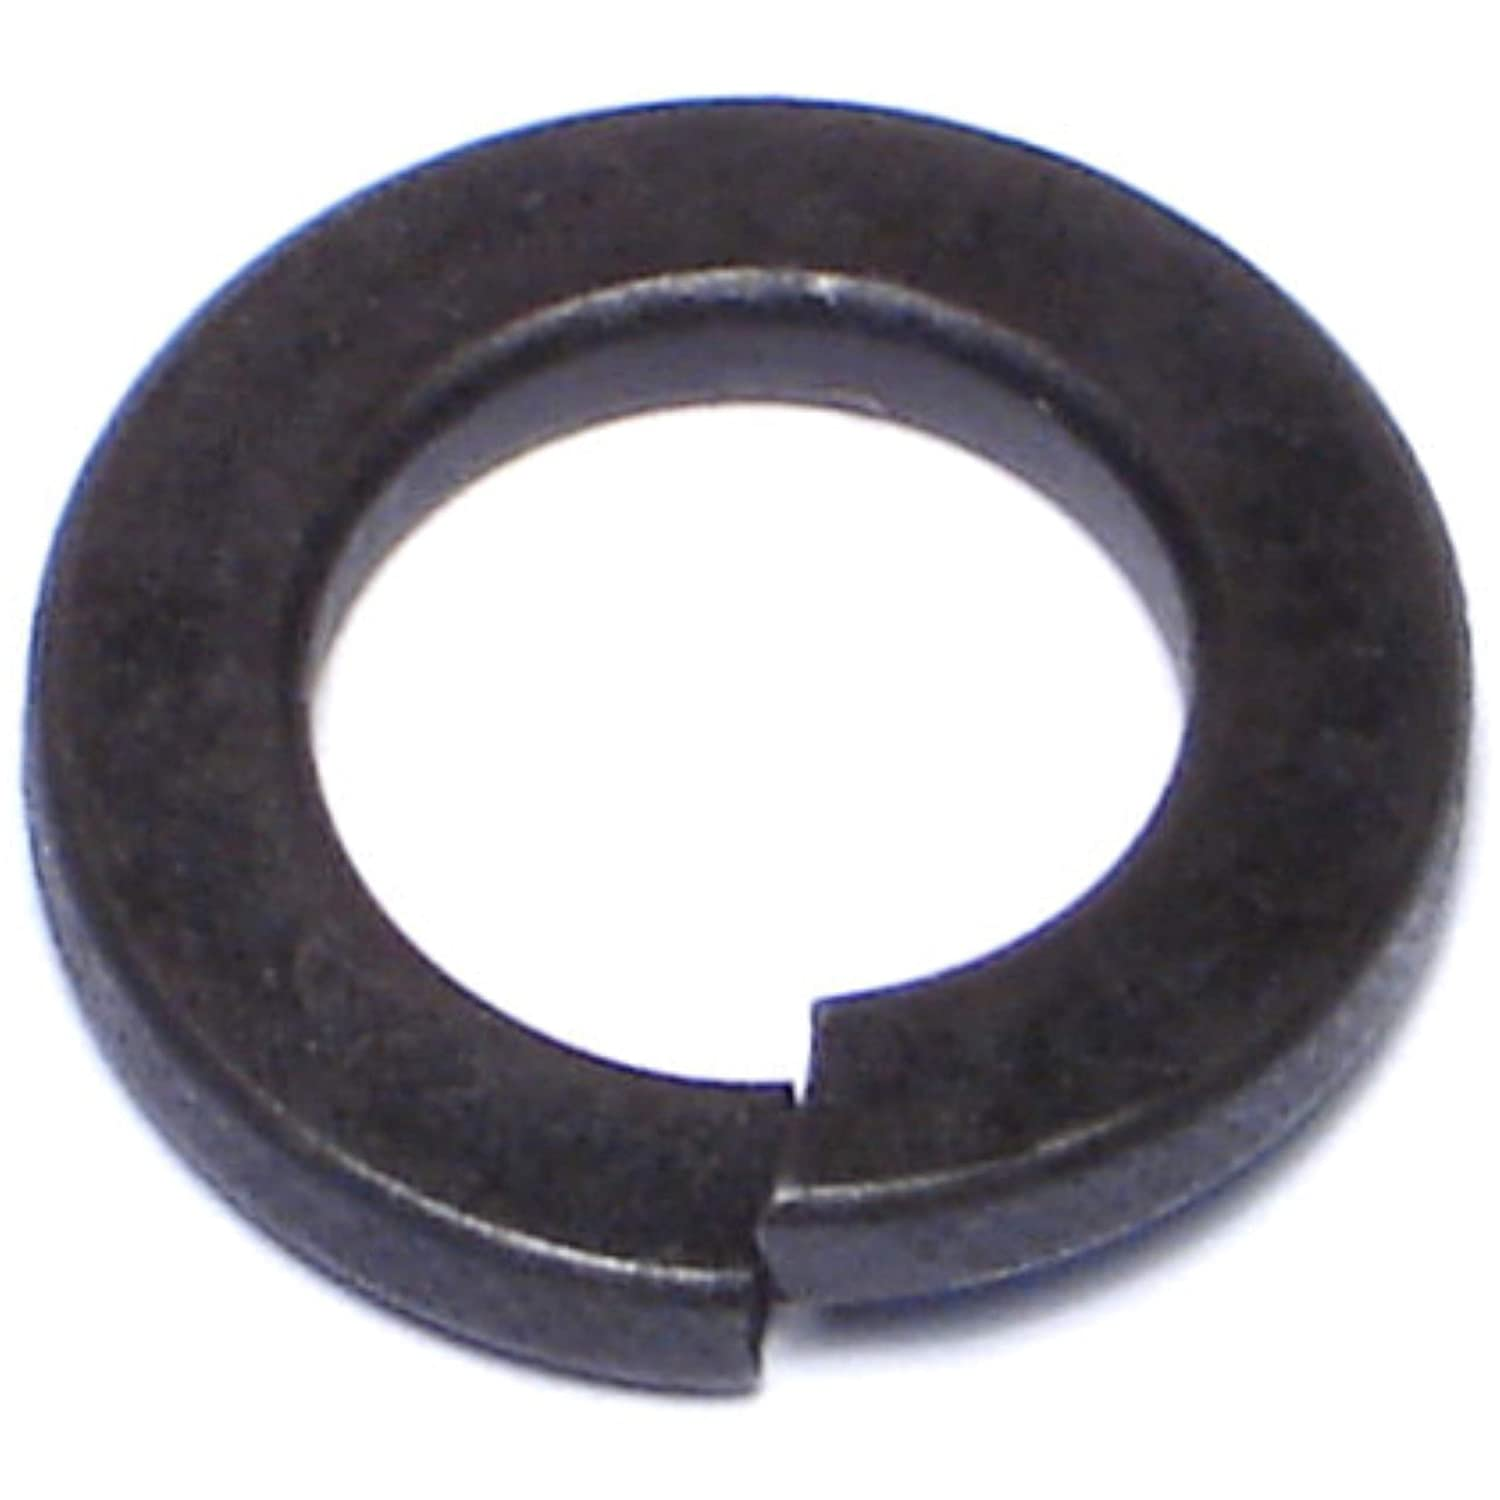 Piece-575 Hard-to-Find Fastener 014973331412 Class 10 Lock Washers 12mm